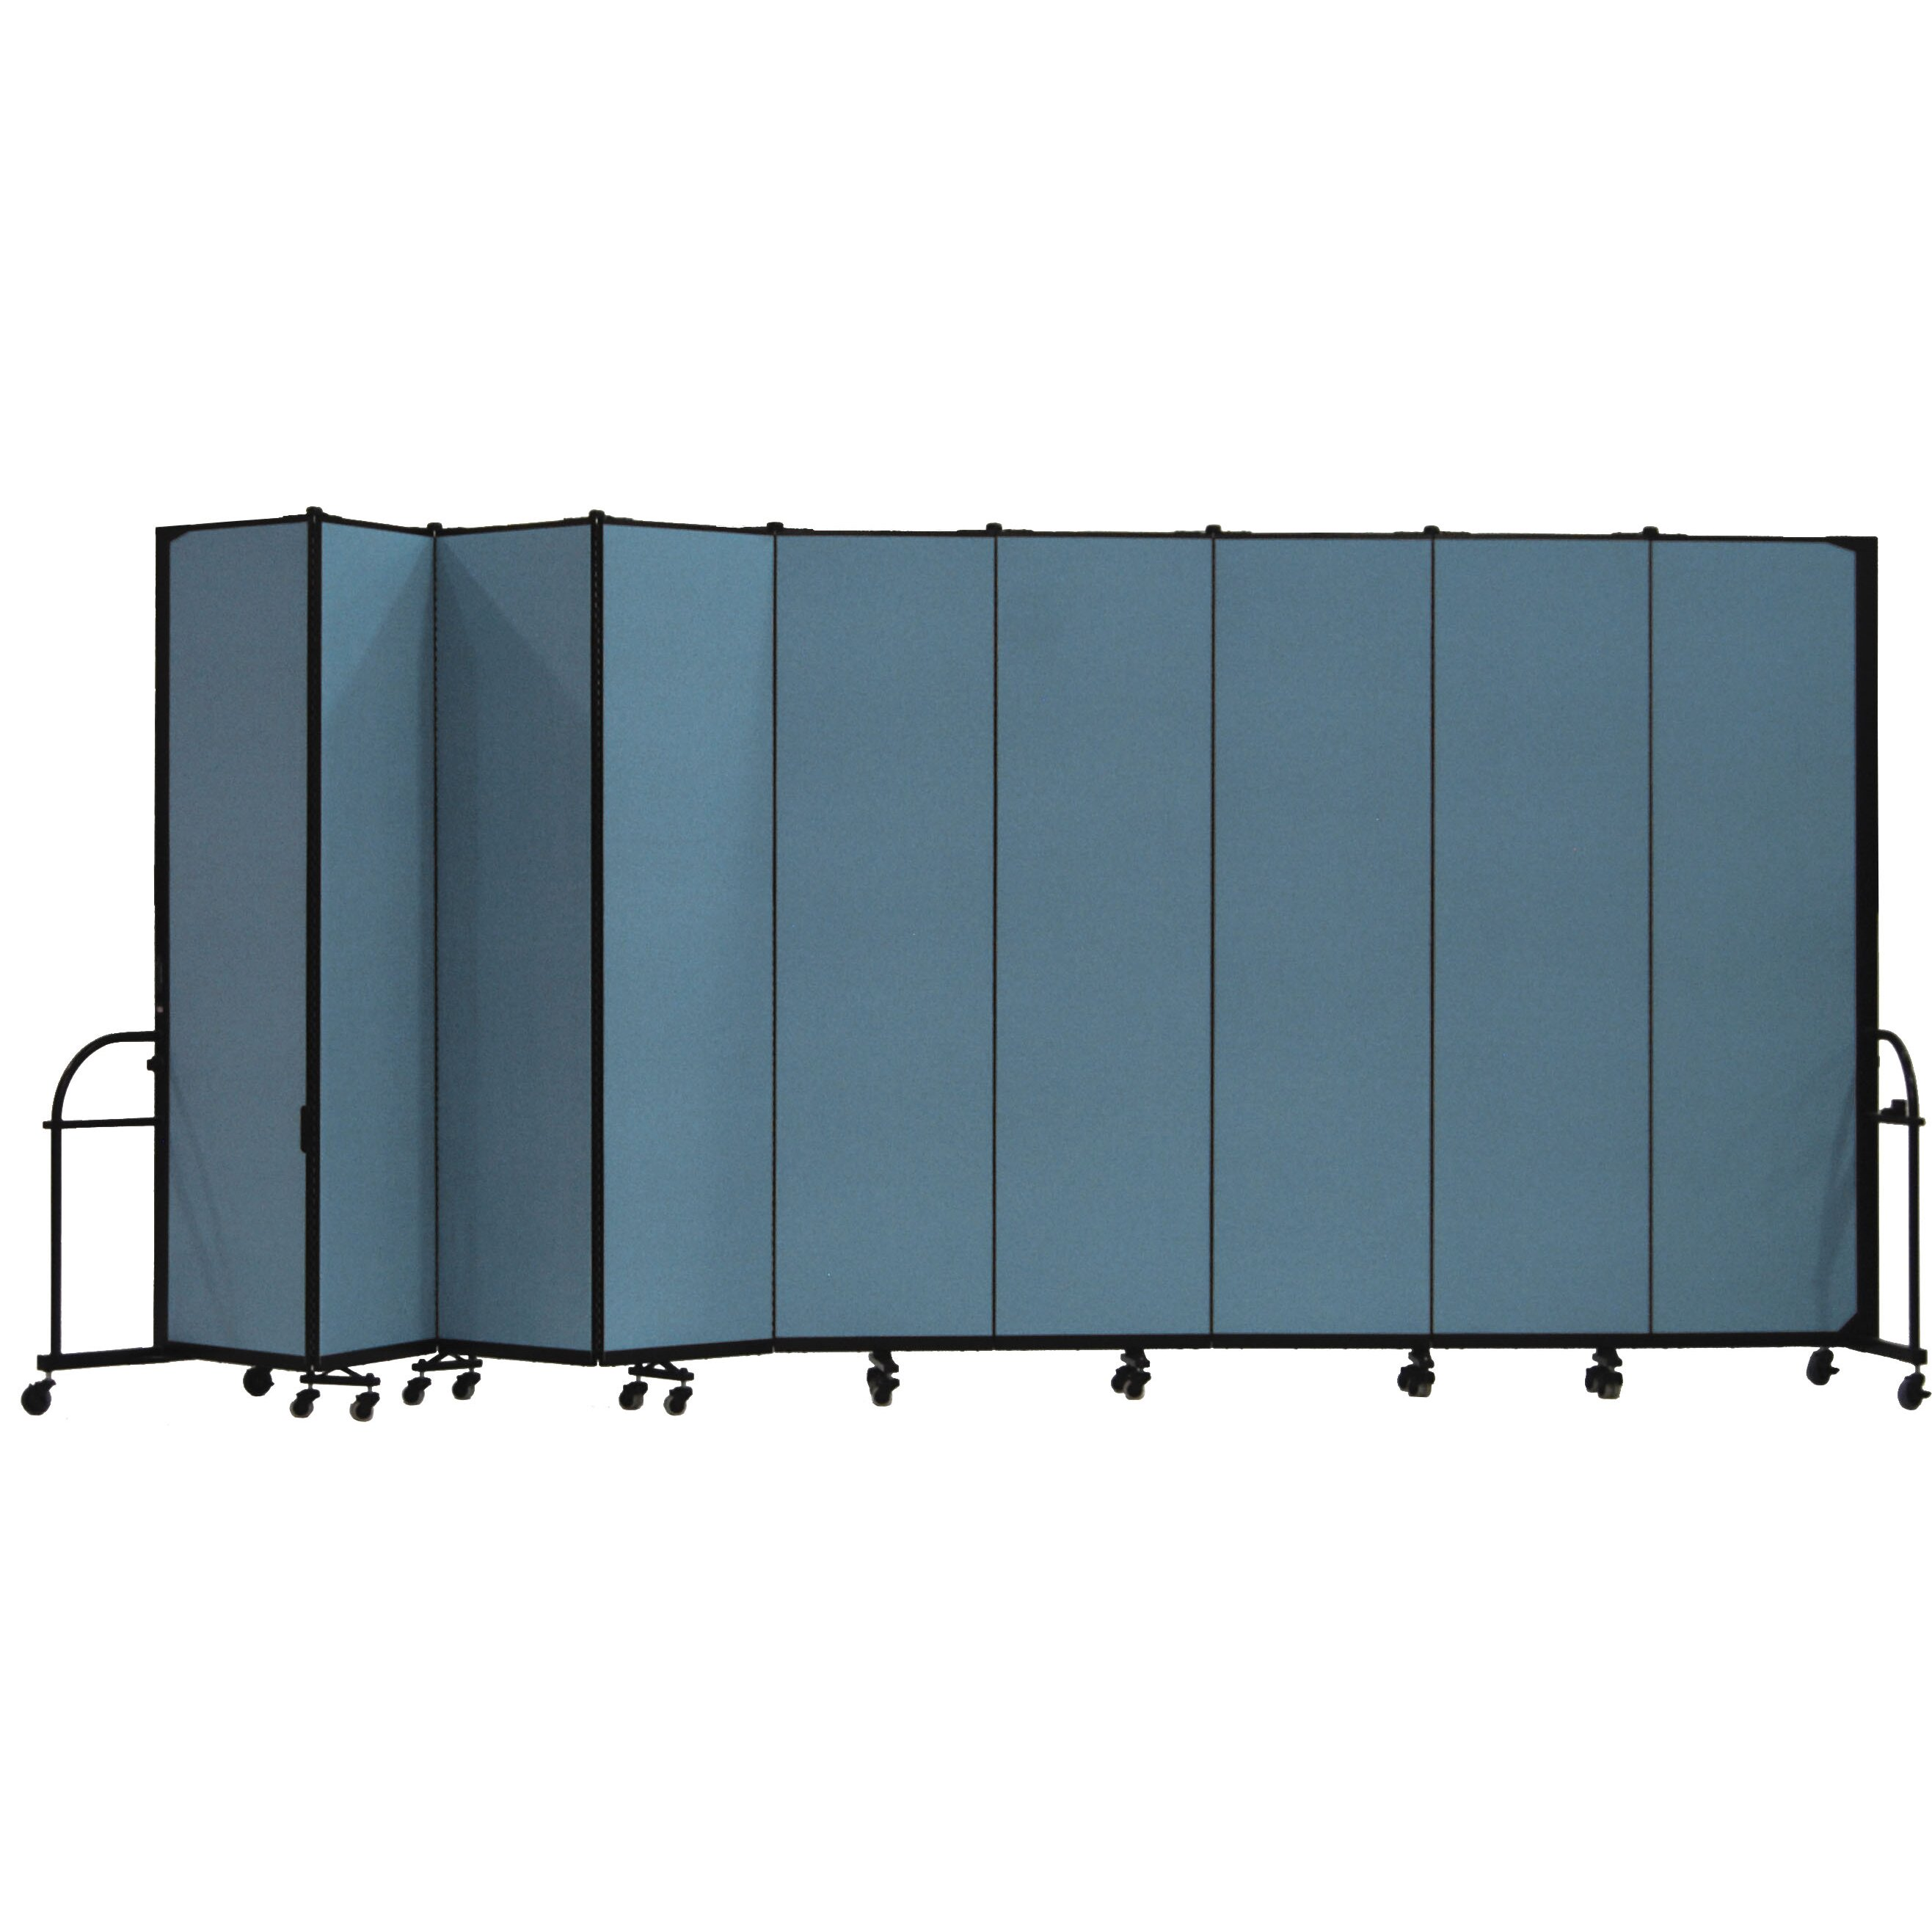 Page not found screenflex portable room iders - Heavy Duty Nine Panel Portable Room Divider By Screenflex